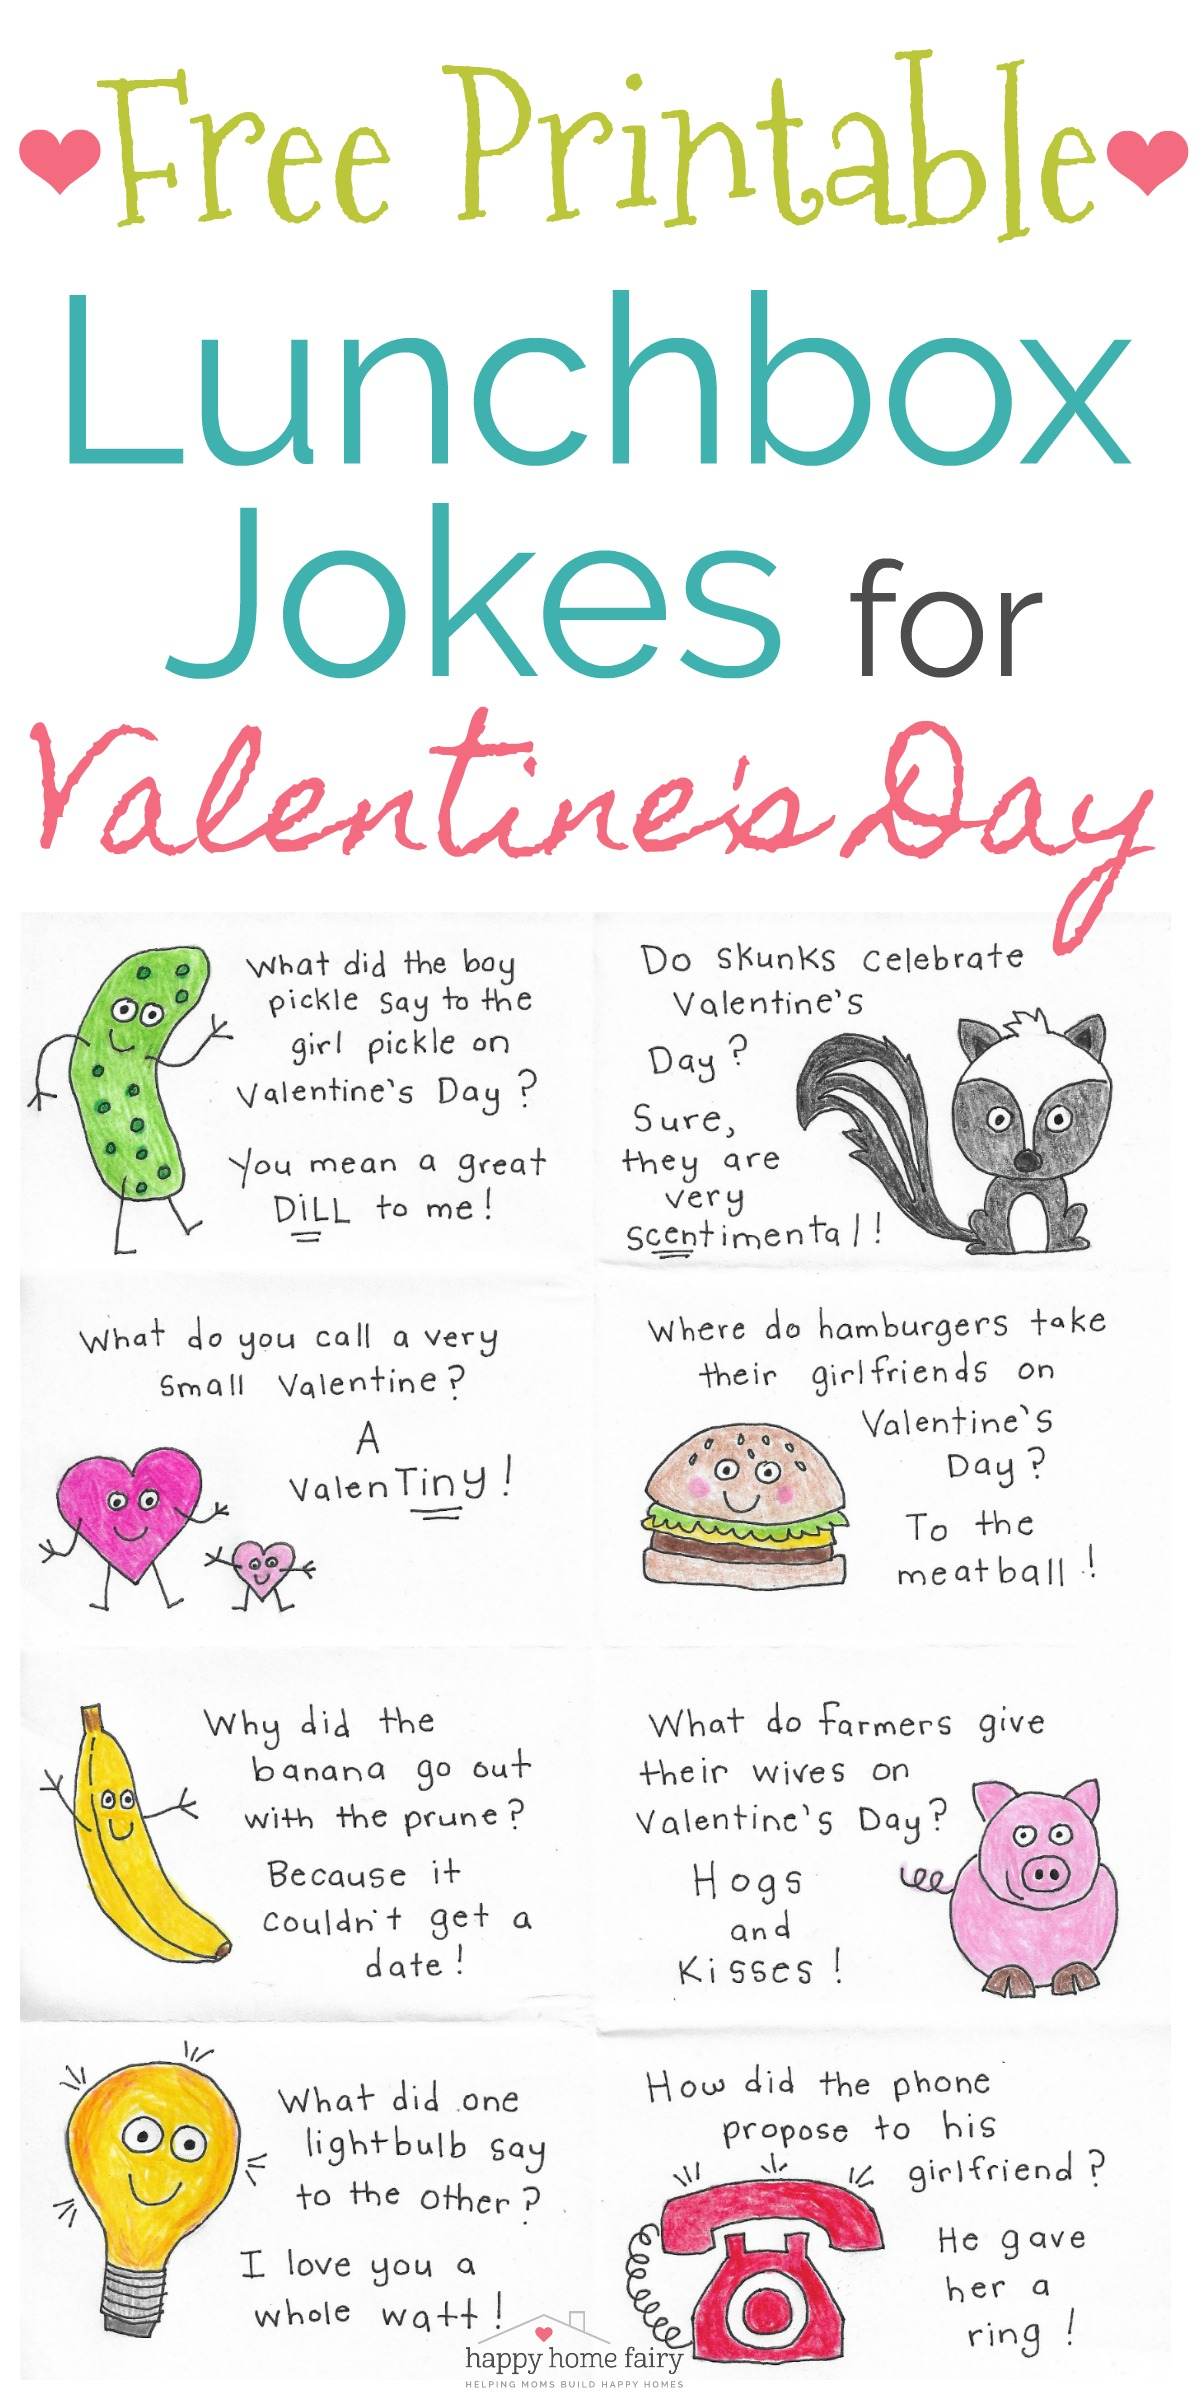 graphic regarding Lunch Box Jokes Printable named Lunchbox Jokes for Valentines Working day - Absolutely free Printable! - Content